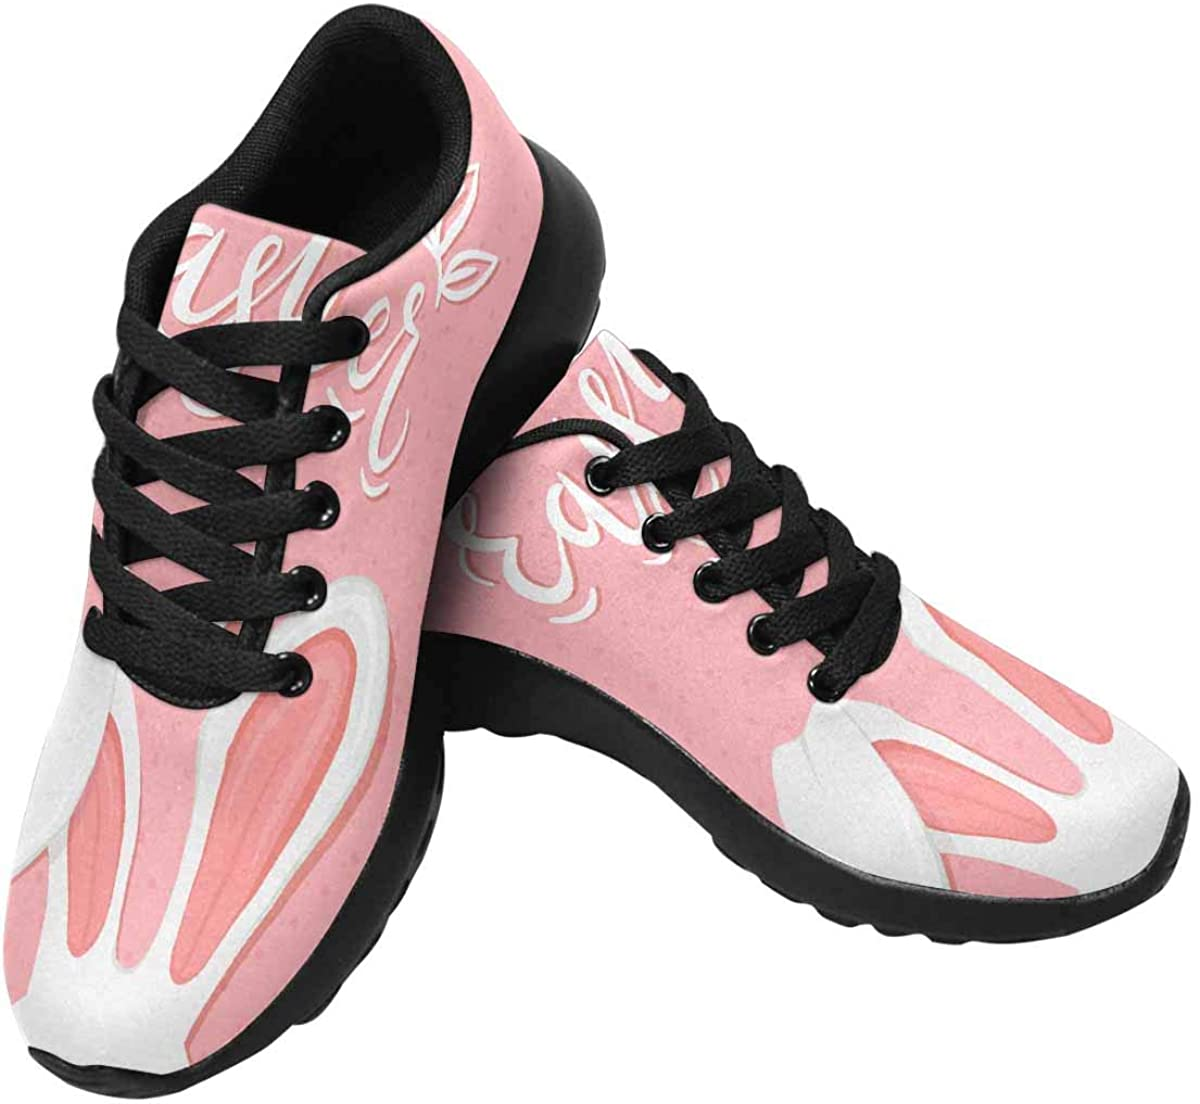 InterestPrint Cute Easter Rabbit with Ears Women's Running Shoes - Casual Breathable Athletic Tennis Sneakers